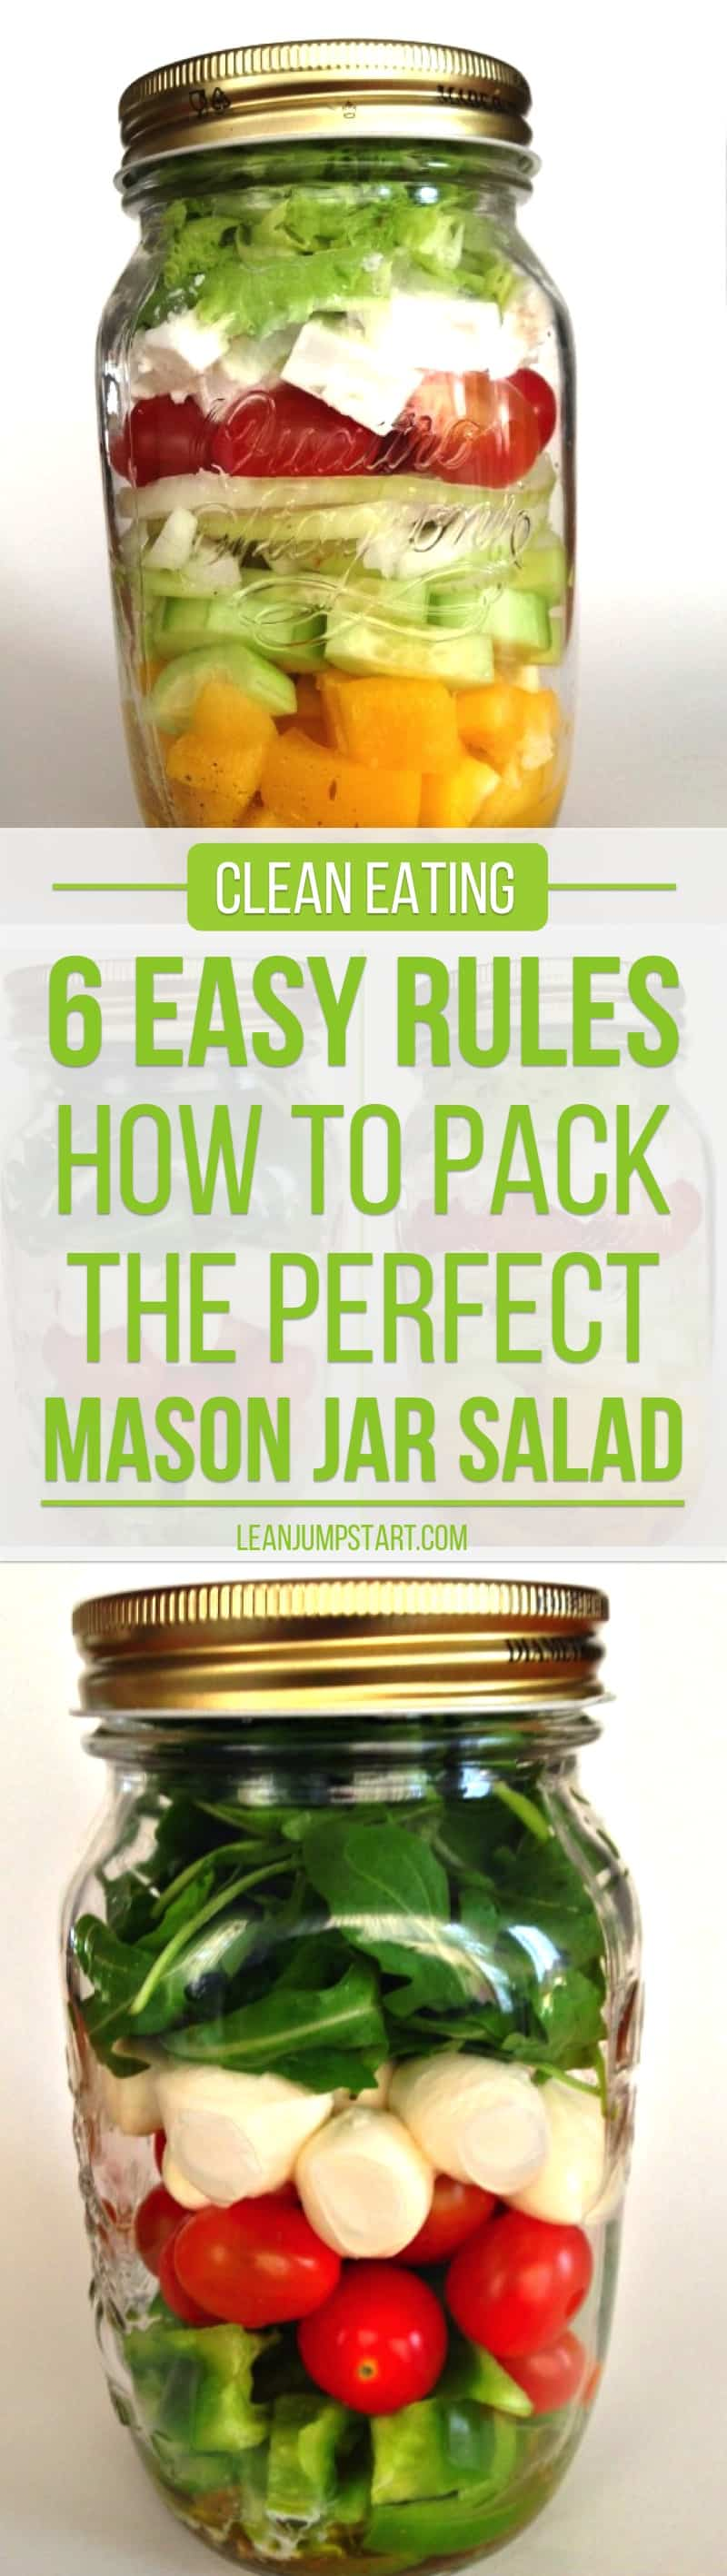 how to pack a mason jar salad - 6 easy rules